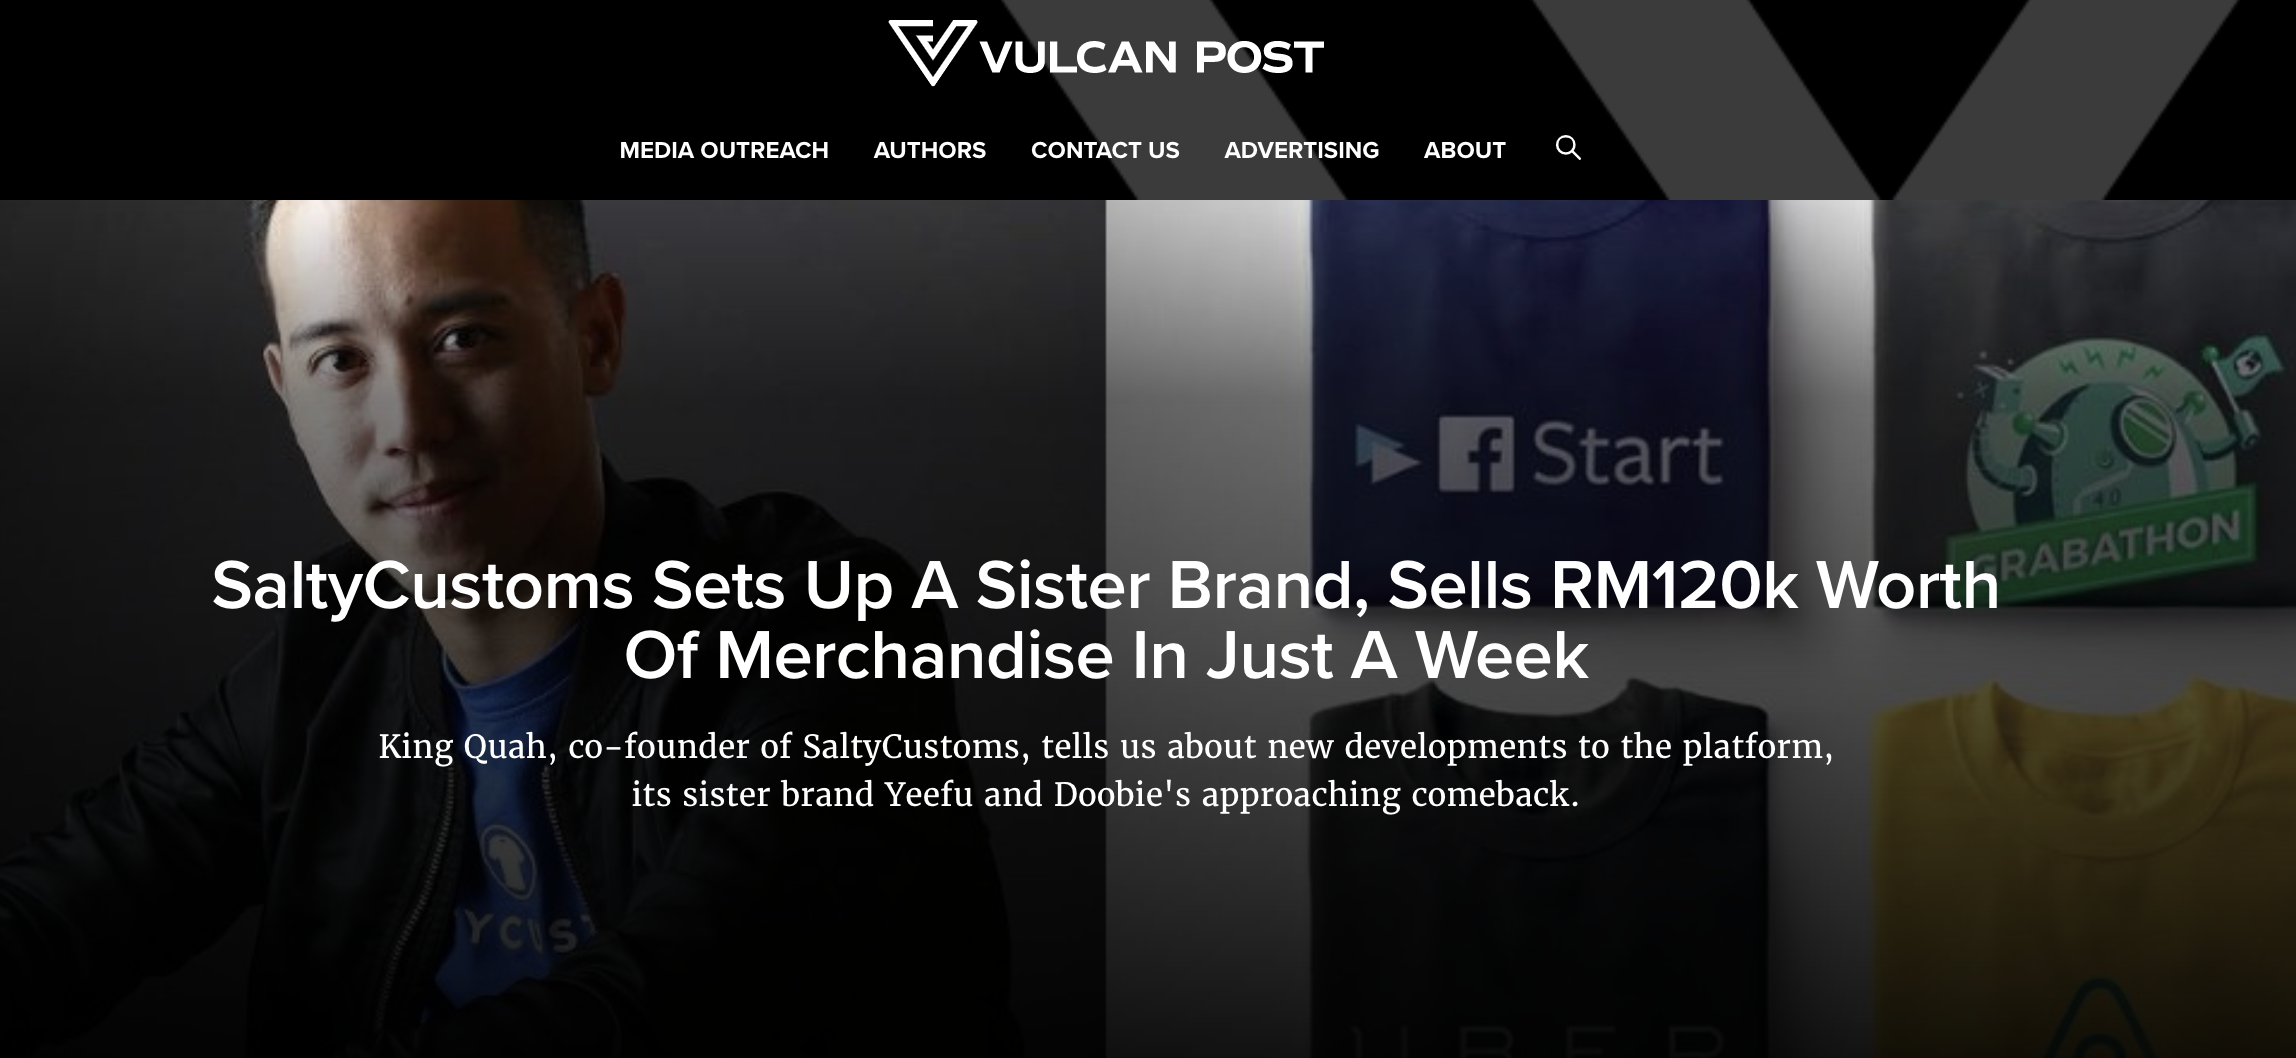 SaltyCustoms Sets Up A Sister Brand, Sells RM120K Worth of Merchandise In Just A Week